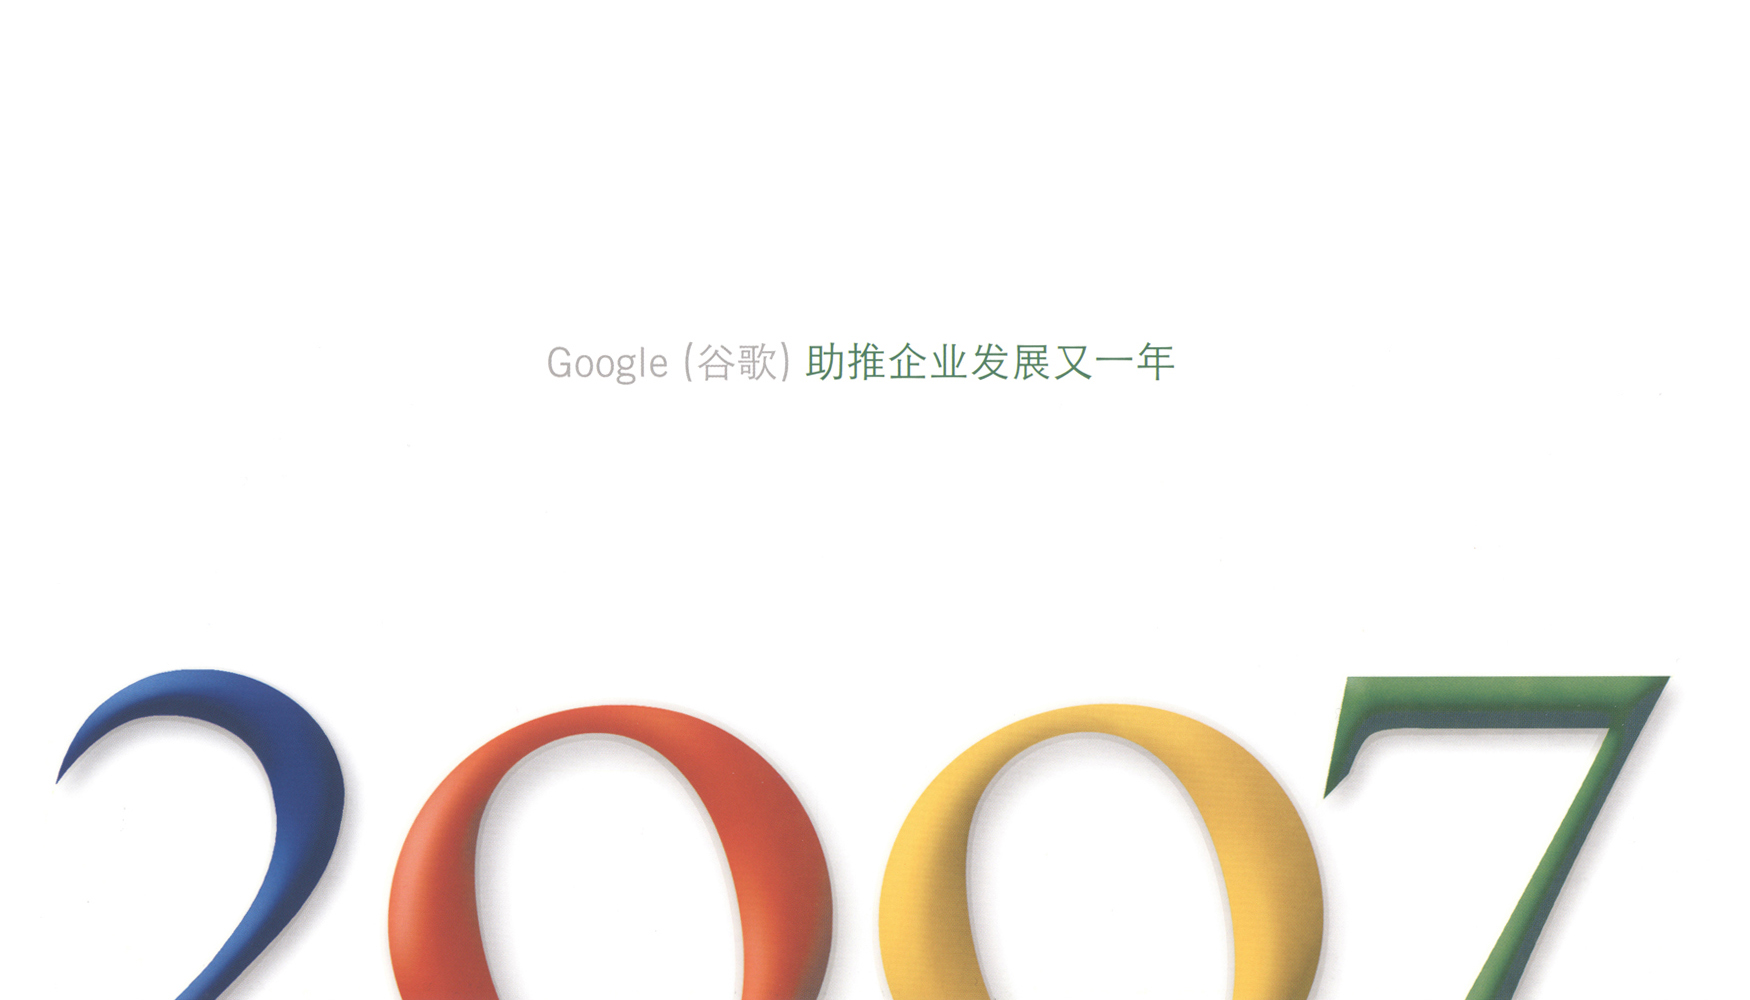 Google Style Logos Online Museum Official And Unofficial Google